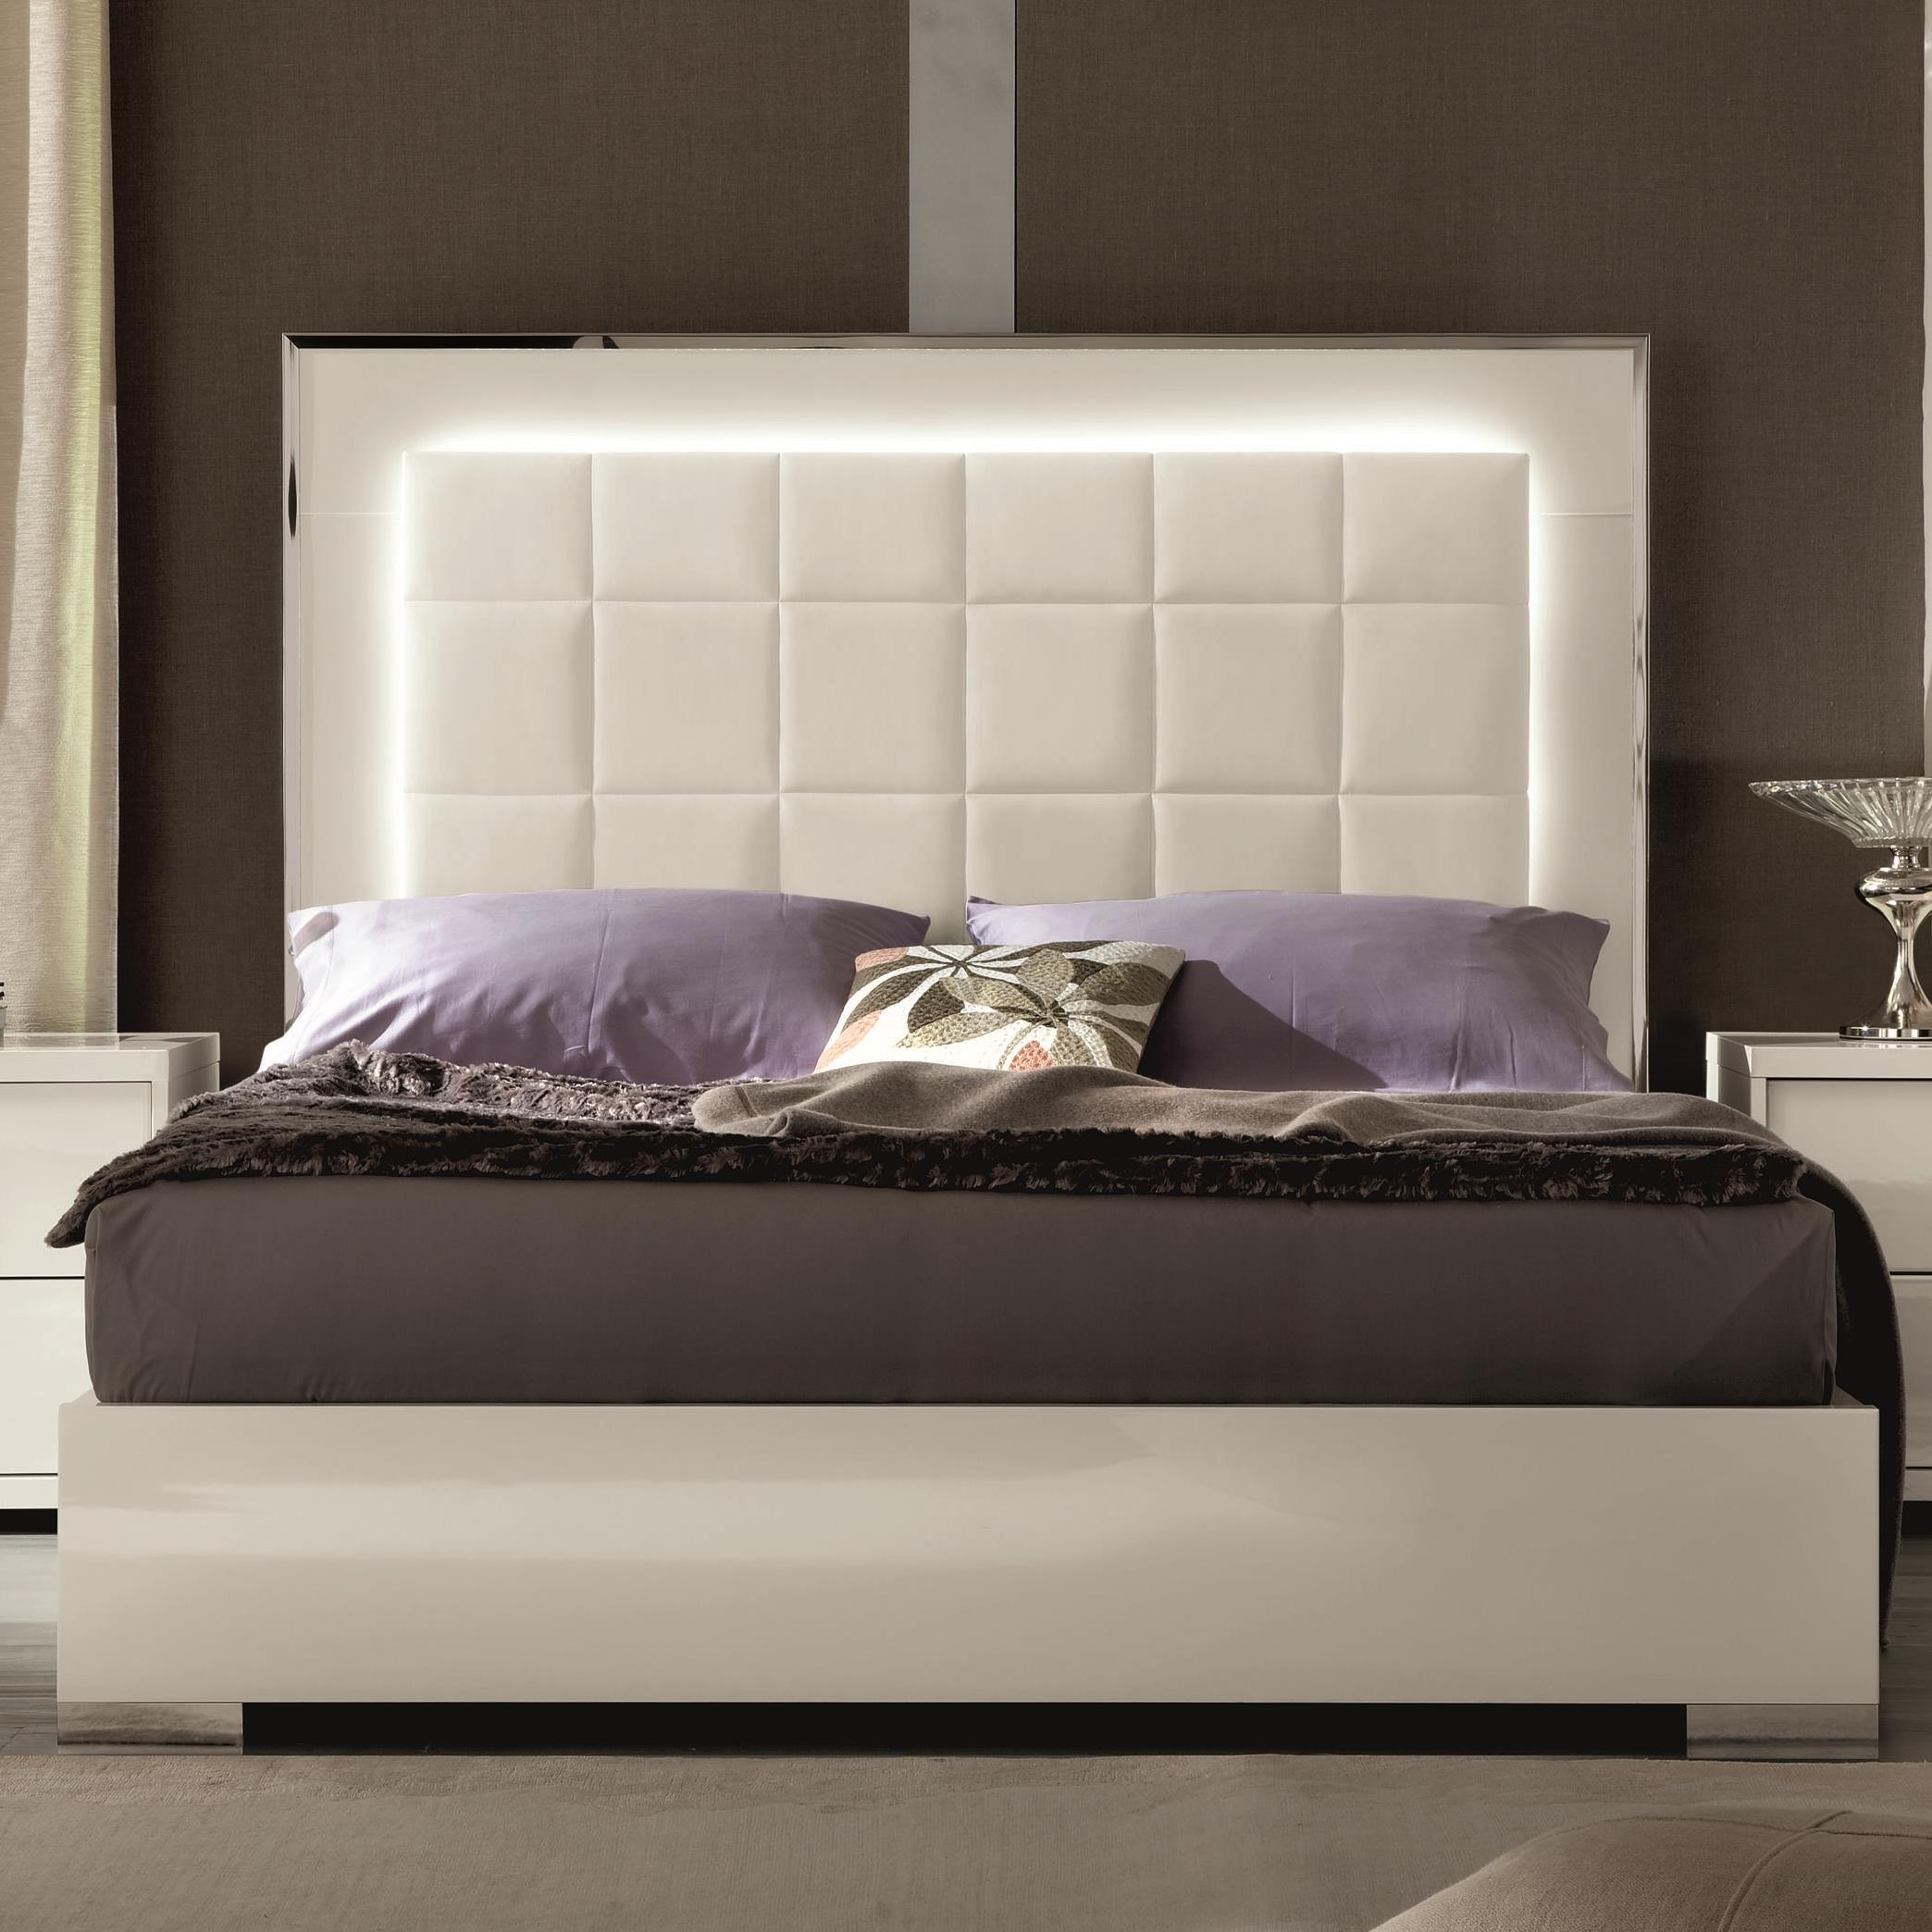 Imperia Queen UPH Bed w/ LED Lights and FB Storage by Alf Italia at Stoney Creek Furniture